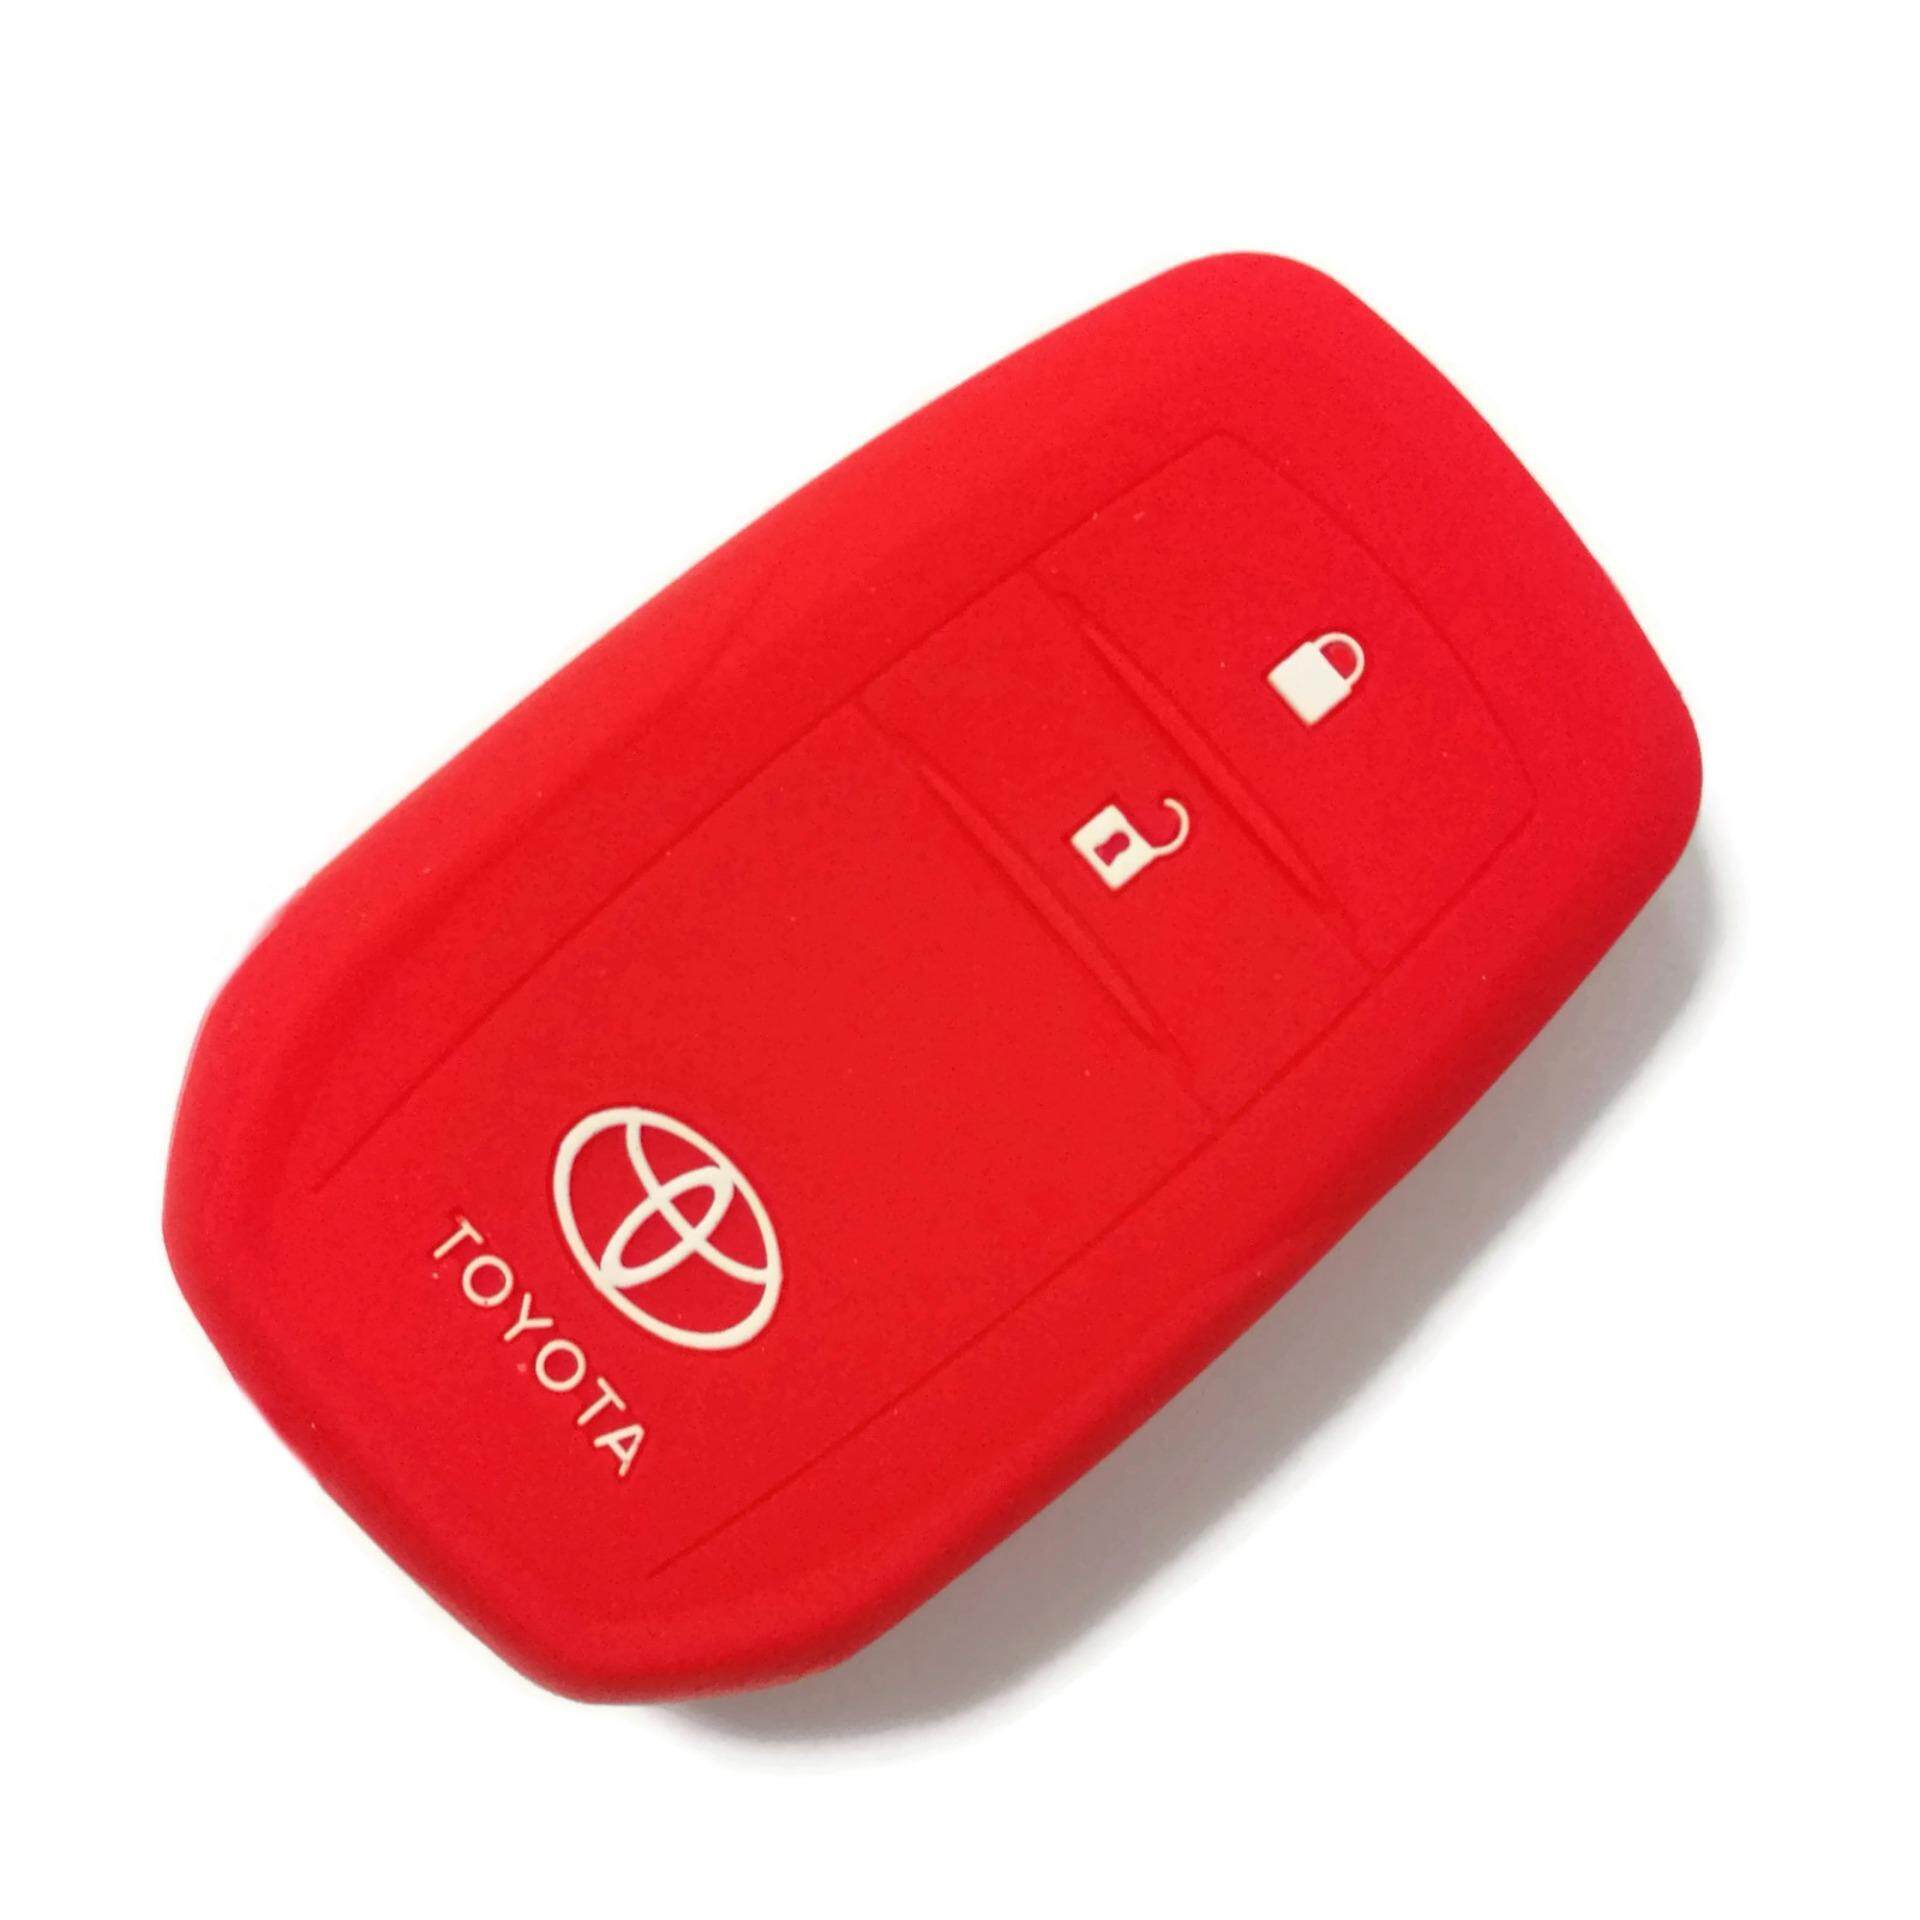 Toyota Hilux Revo & All-New Innova 2016-2018 Keyless Remote Silicone Car Key Cover Case (Red)